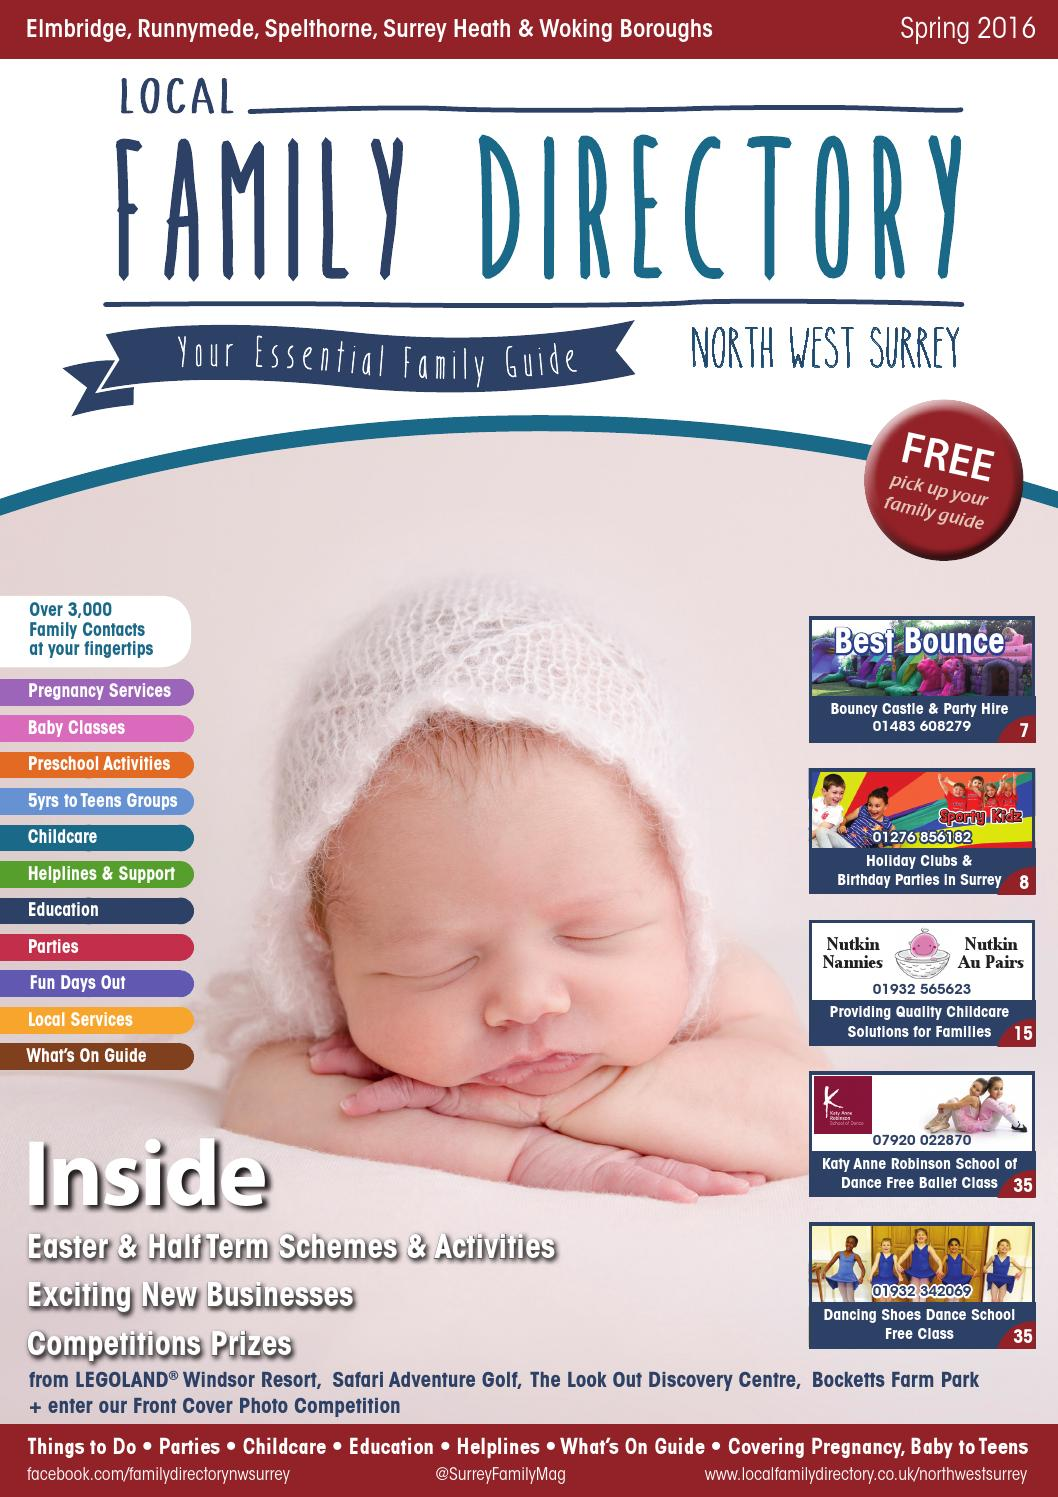 e9fb89c86 Local Family Directory North West Surrey March - July Spring 2016 Edition  by Family Life Guide